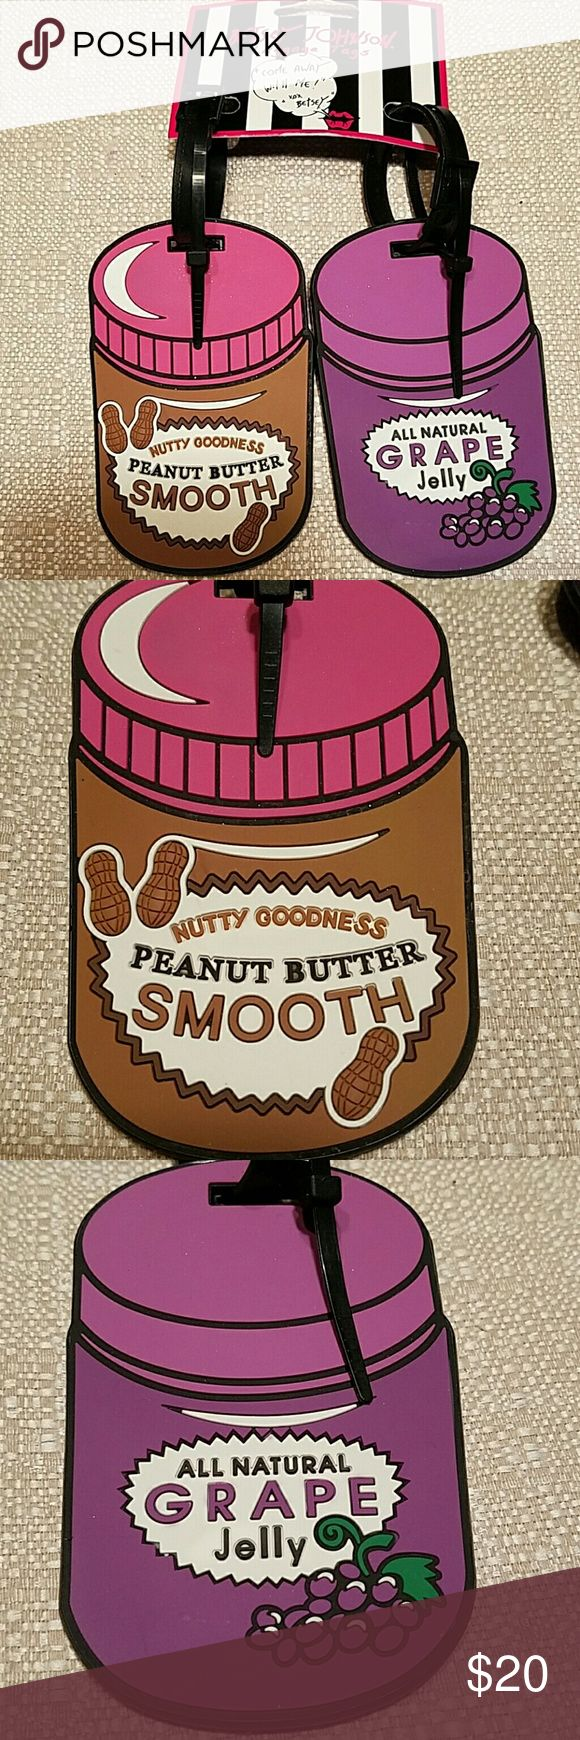 Betsy Johnson Luggage Tags 2-pack PB & J,  NWT You can thank Betsy for giving us these ridiculously adorable luggage tags the perfect pair Peanut Butter and Jelly Jars. Travel in style with these bold colors that make it easy to spot your precious luggage from afar. Flexible rubber material is sturdy and wear resistant. Yay Betsy fun!! Brand new with tags. Betsey Johnson Accessories